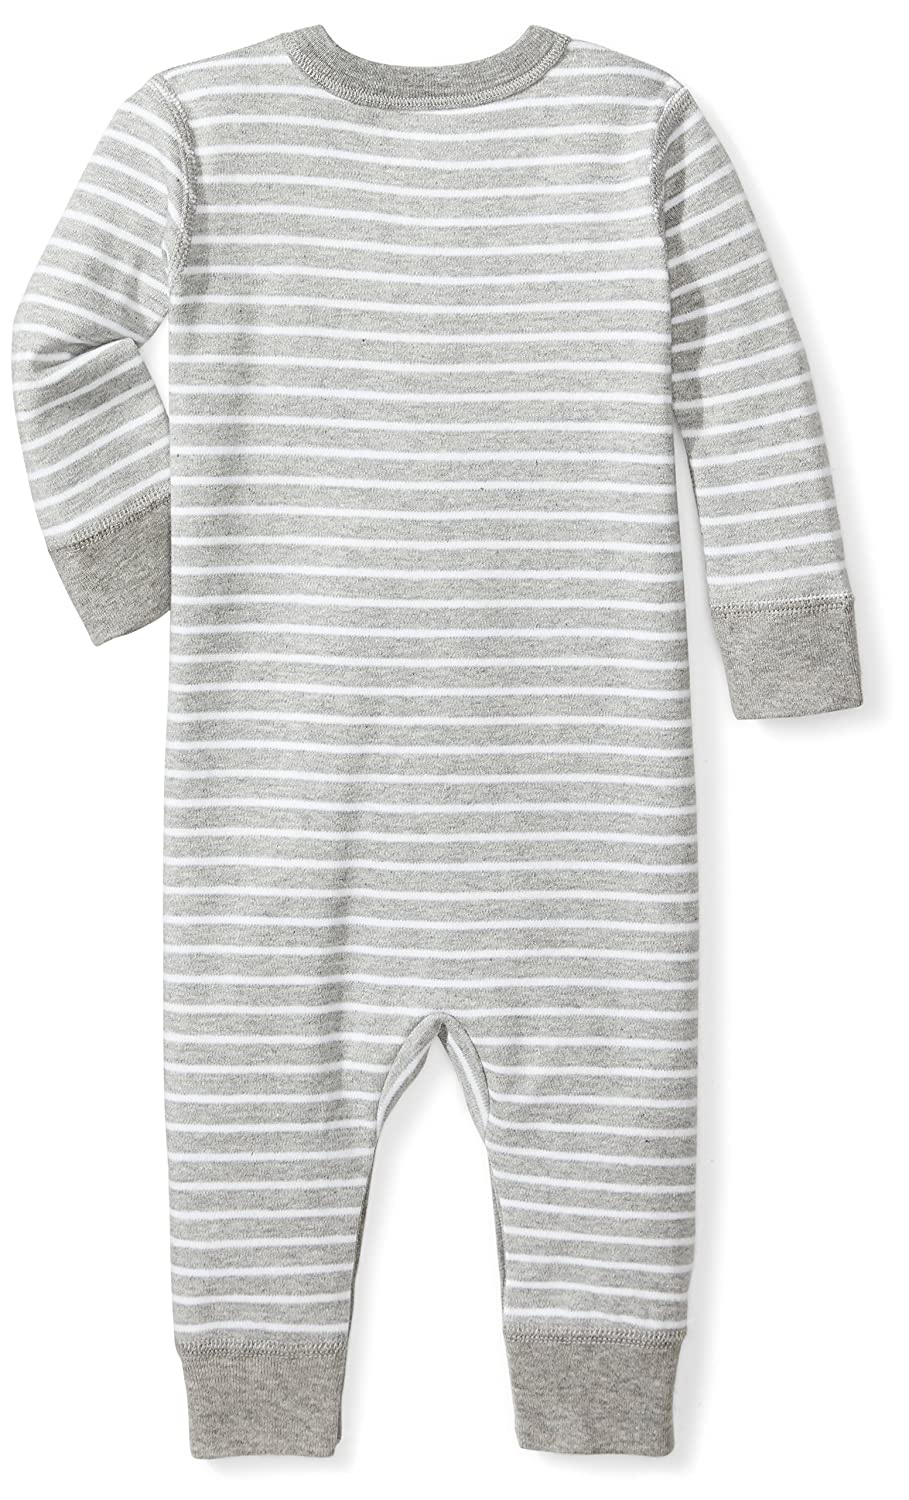 18 Months Moon and Back Baby Organic Snap-Front One-Piece Coverall with Cap Set Grey Heather